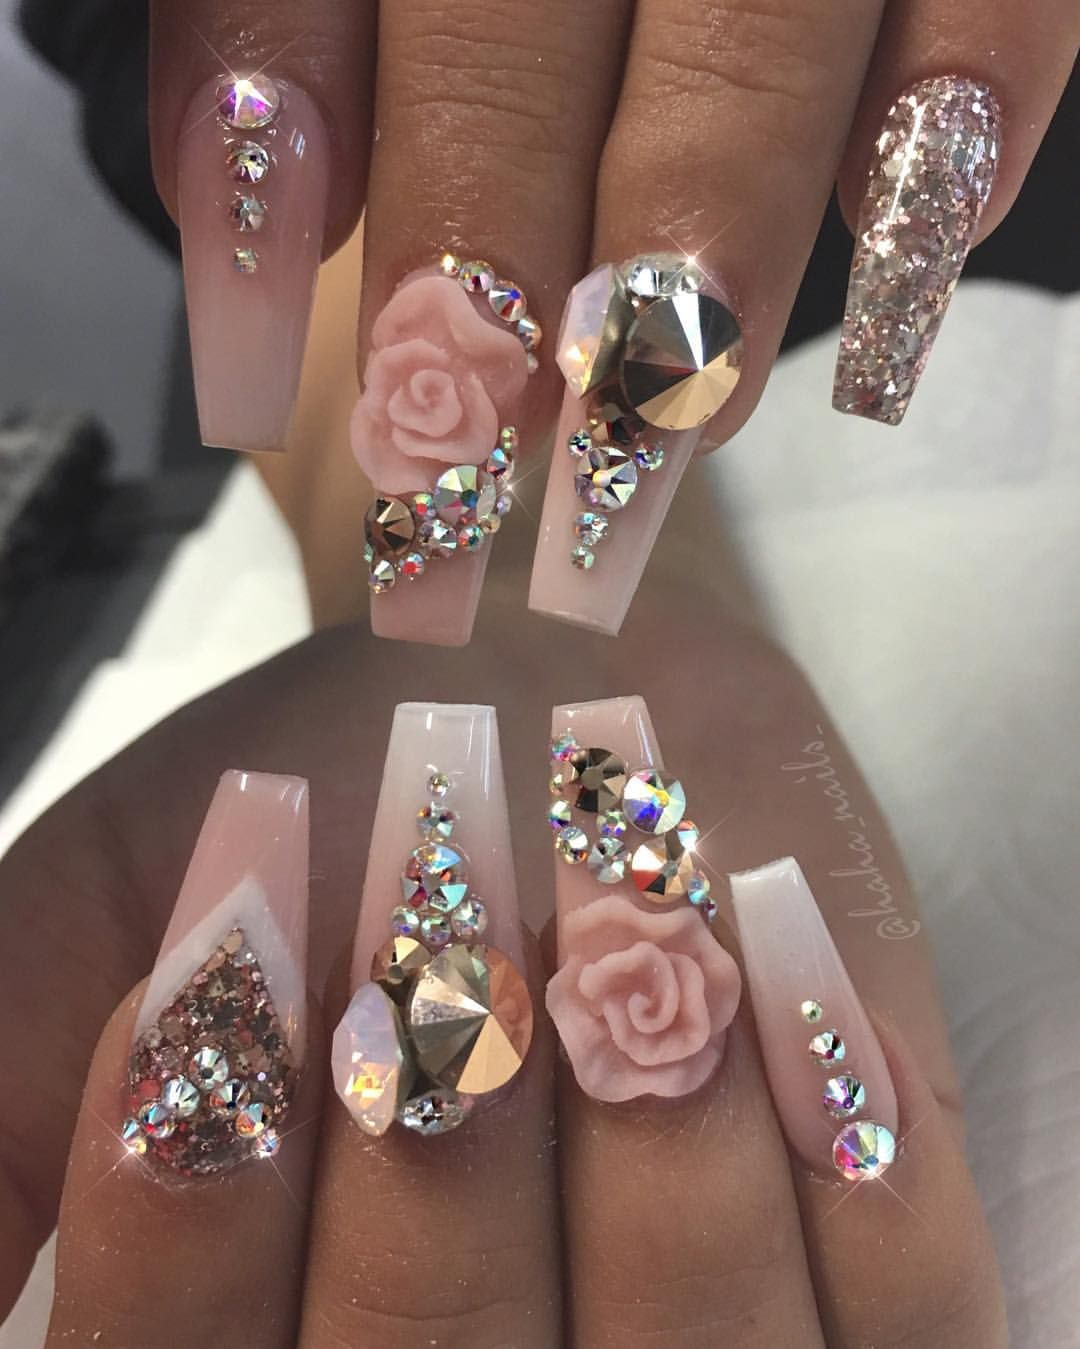 3d Nageldesign Light Pink Nails With 3d Rose Design And Lots Of Gems Nail Ary